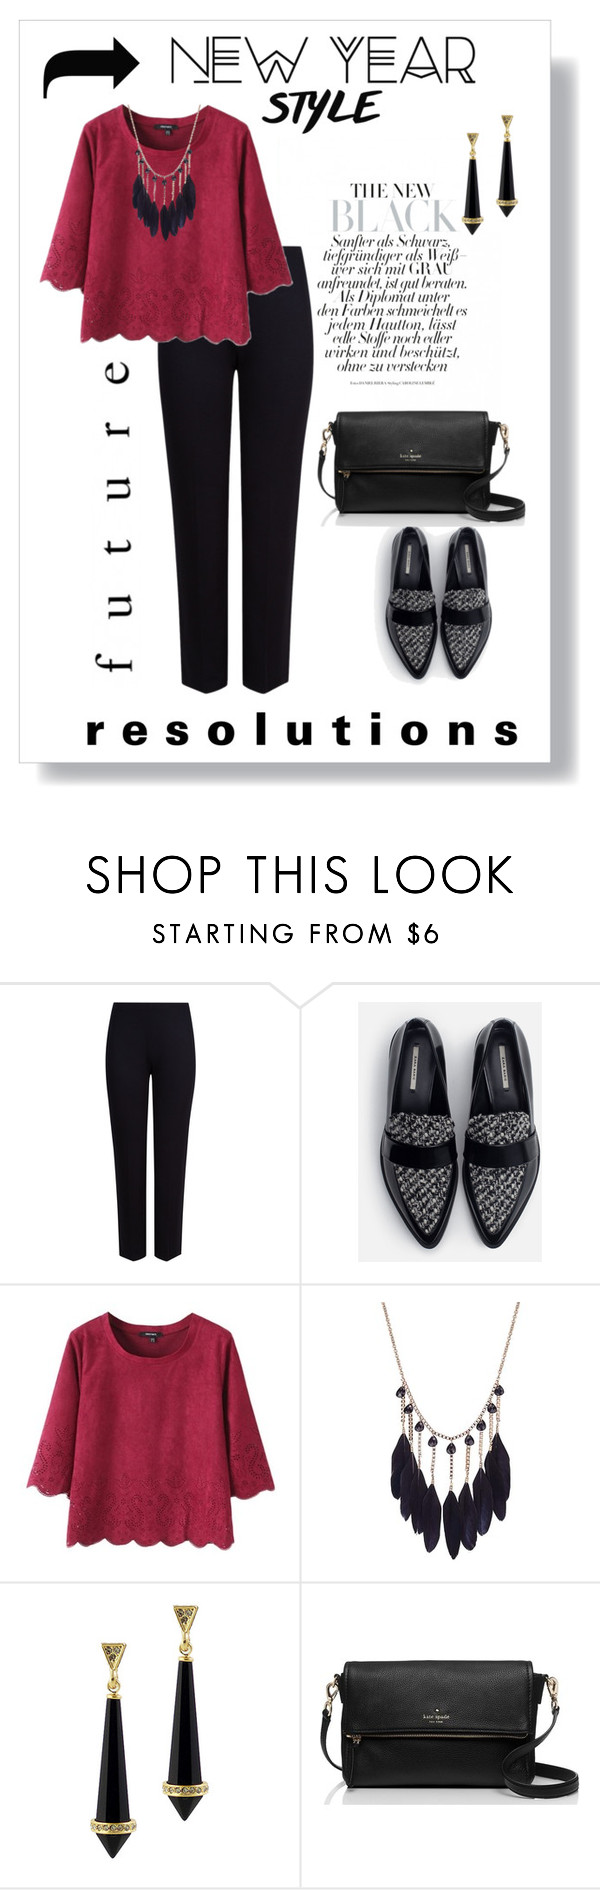 """New Year Style Resolution"" by krskinner ❤ liked on Polyvore featuring M&S Collection, Zara, House of Harlow 1960, Kate Spade and styleresolution"